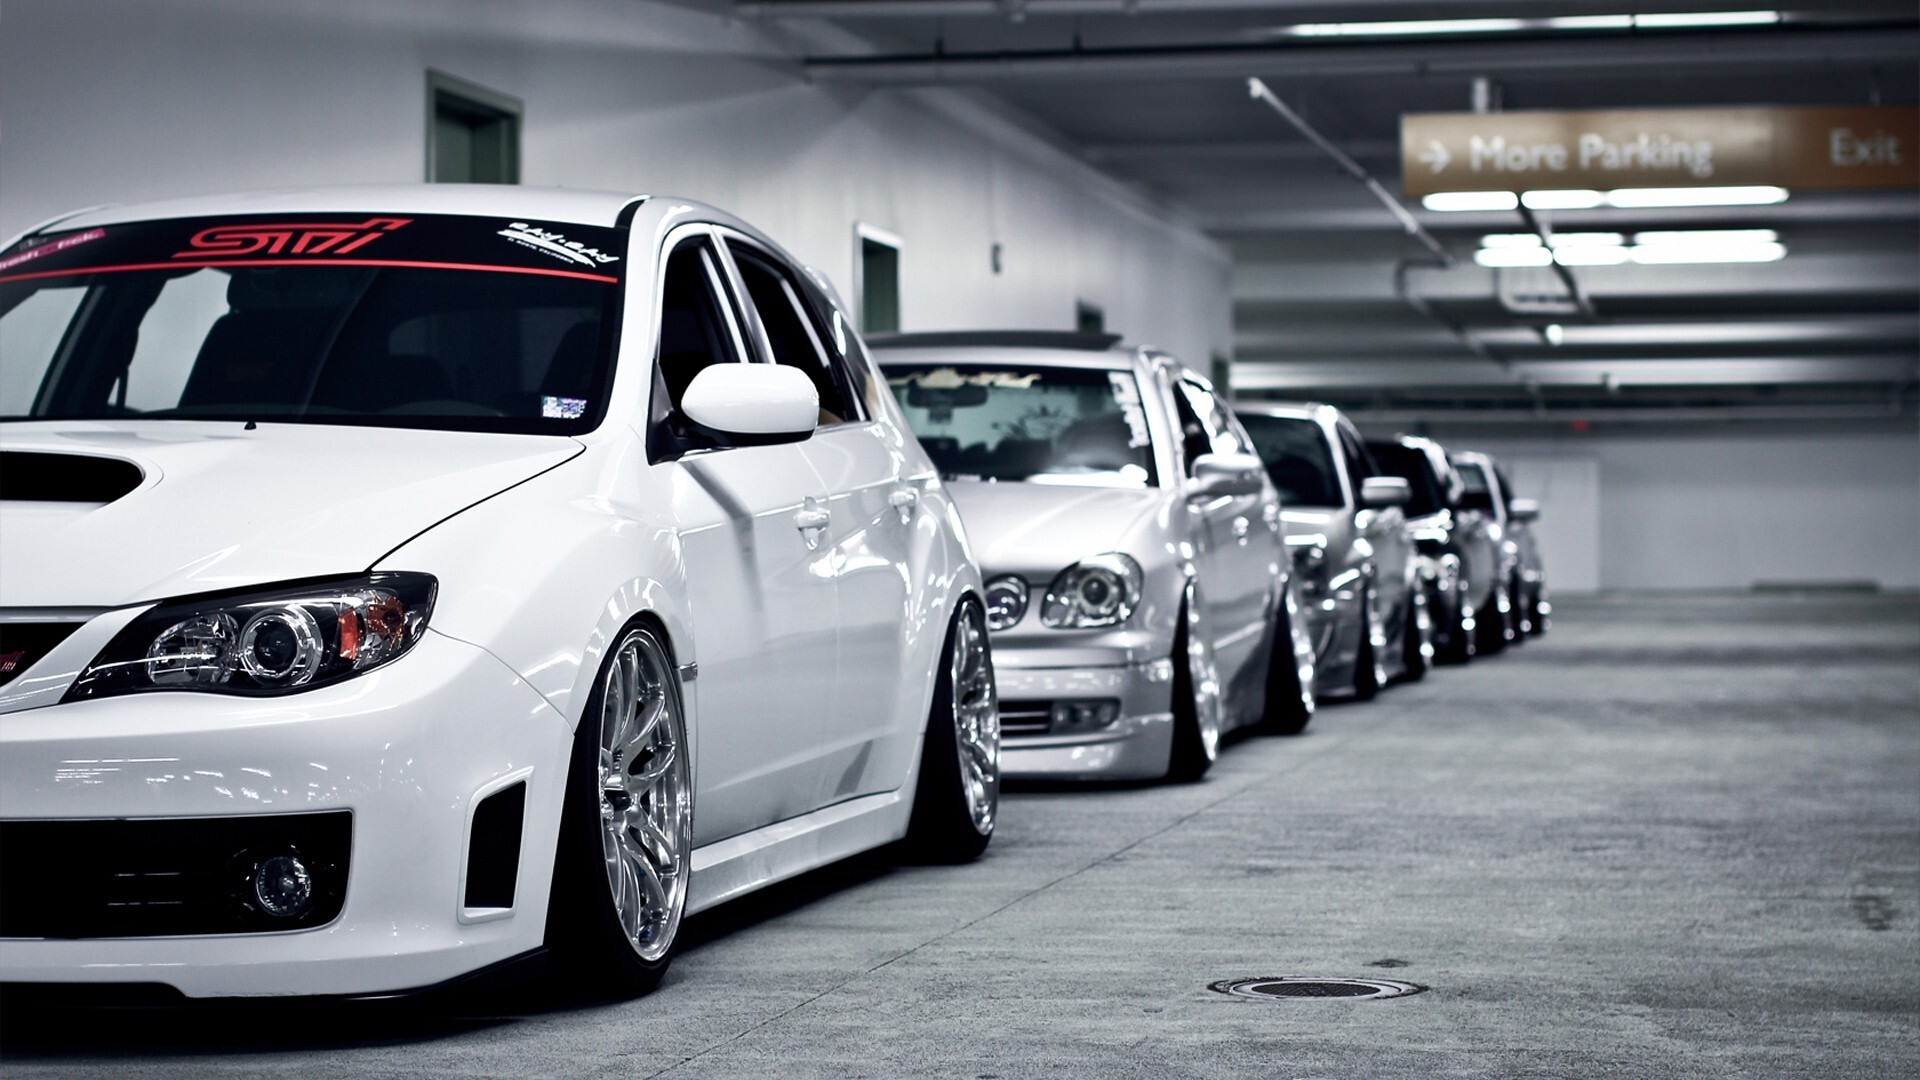 stancenation car wallpaper | hd wallpapers